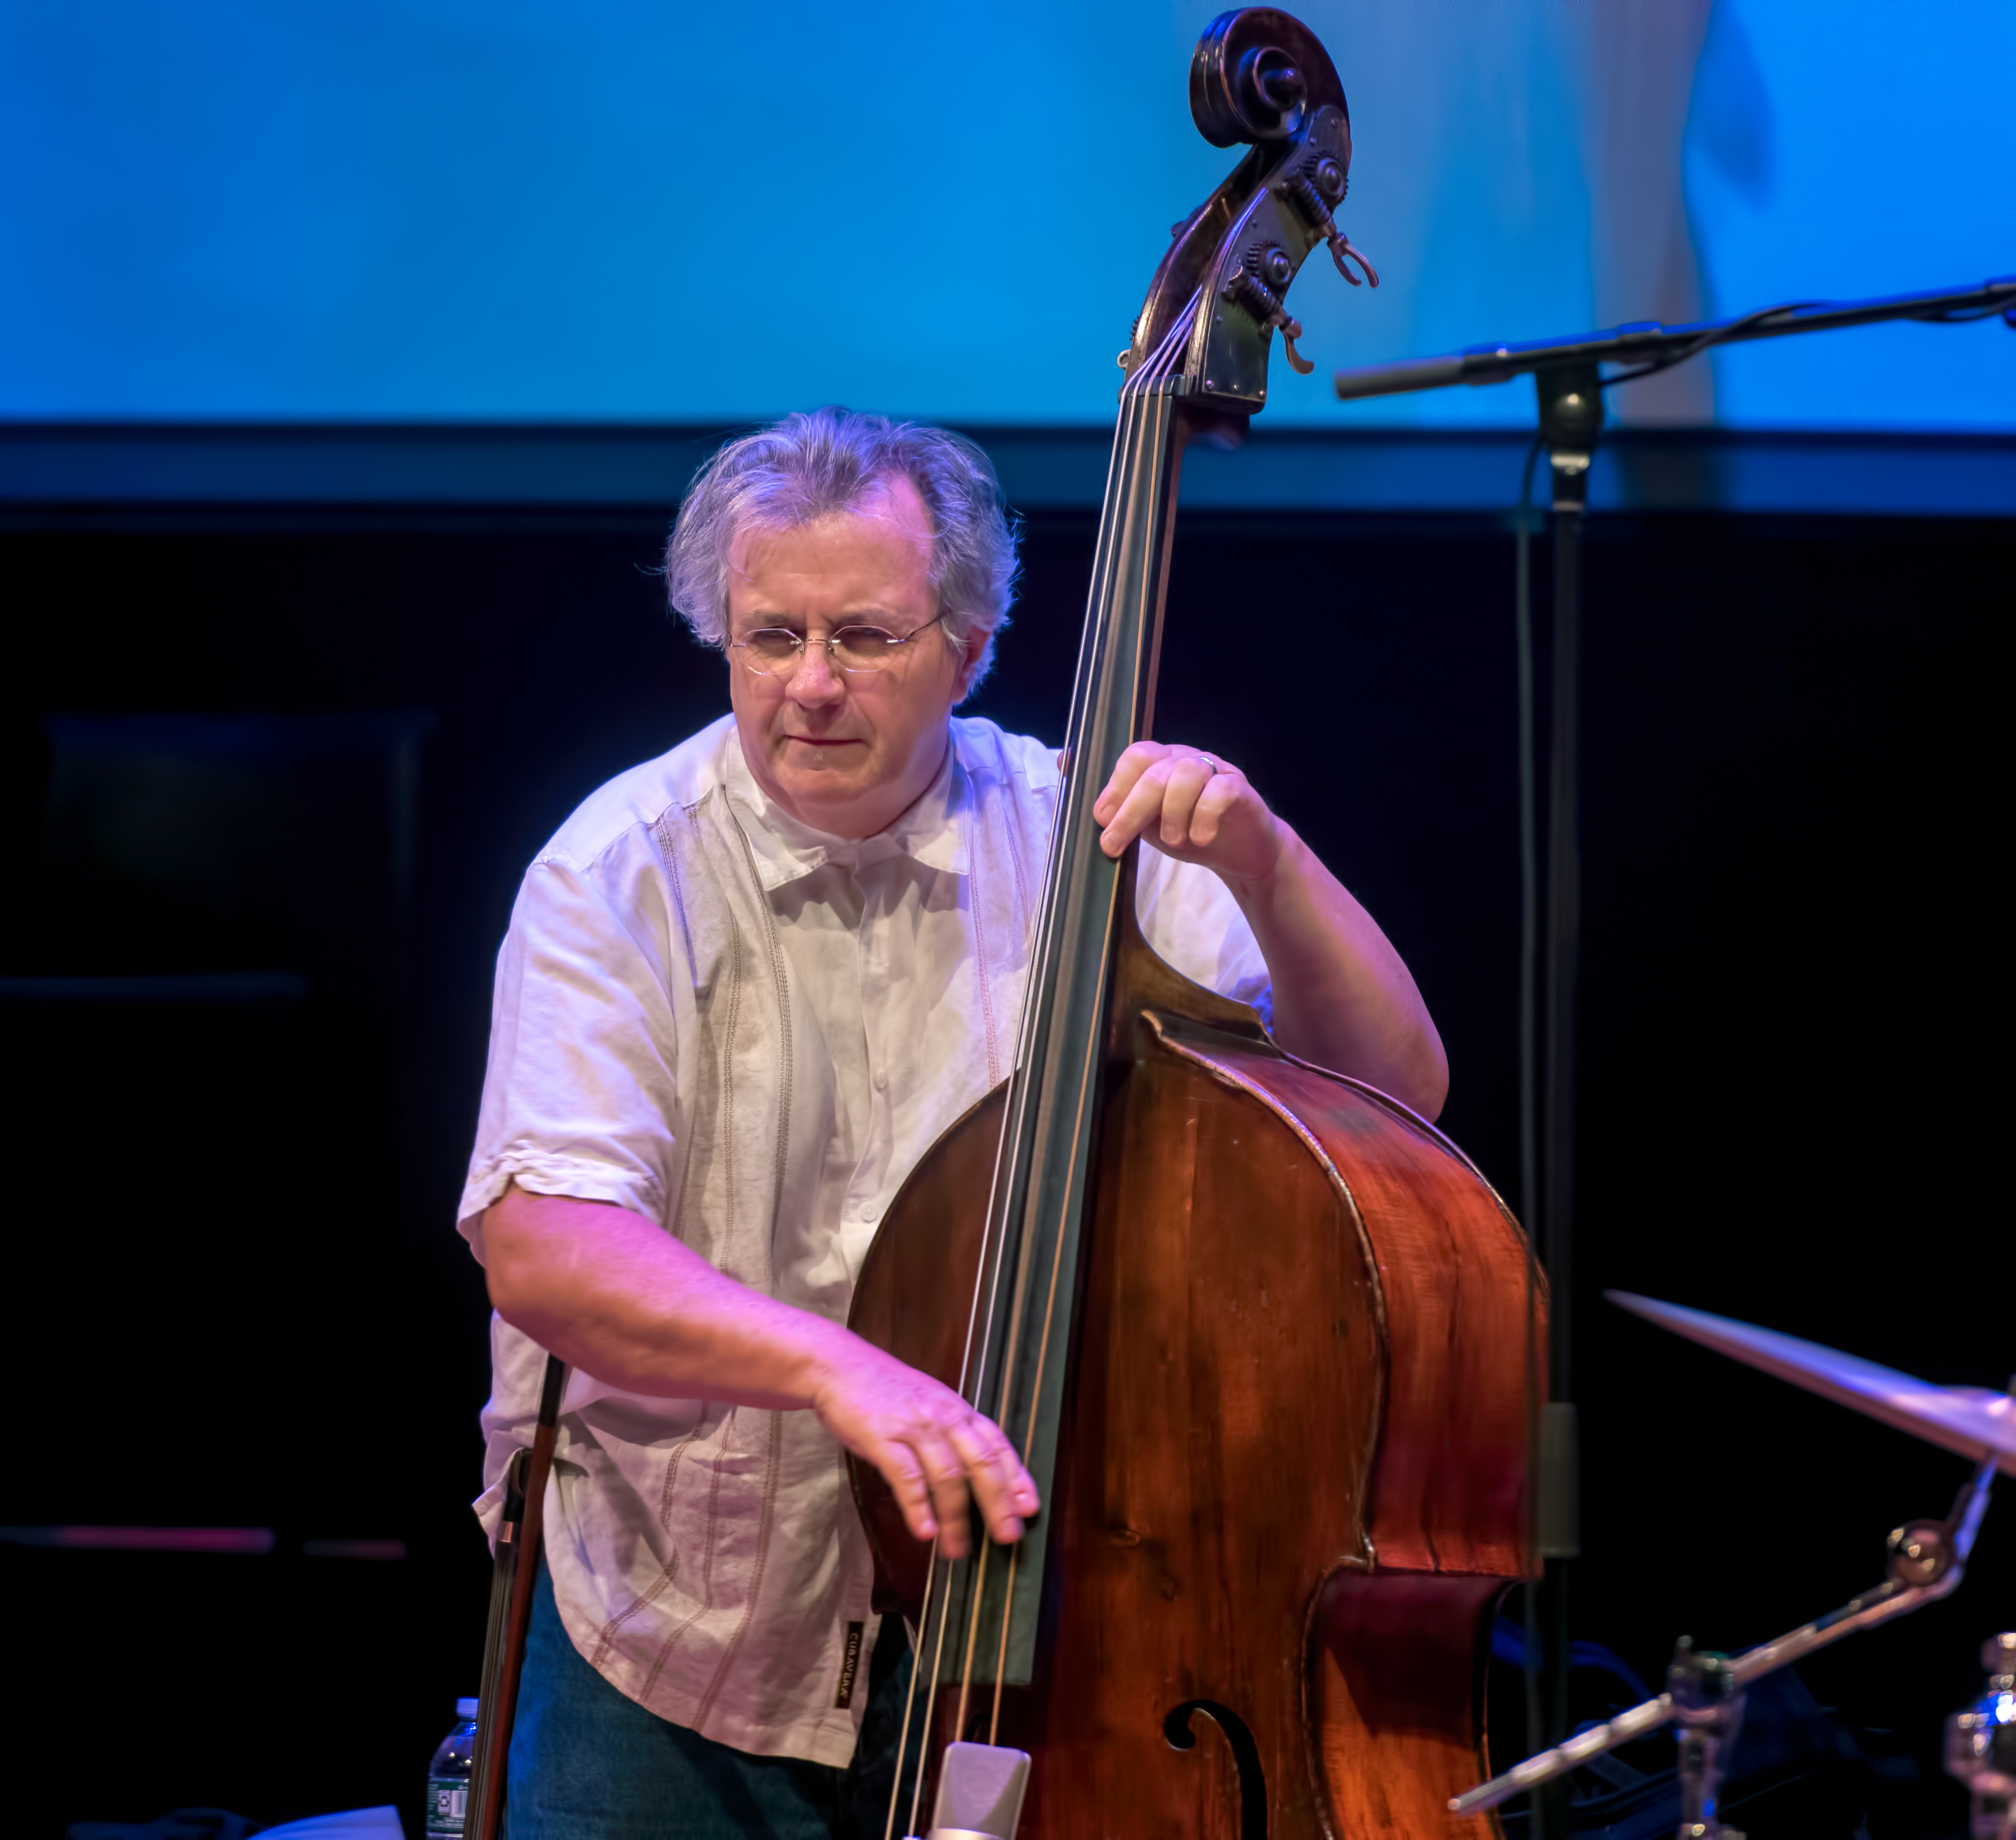 Michael Bisio with the Whit Dickey Trio At the Vision Festival 2018